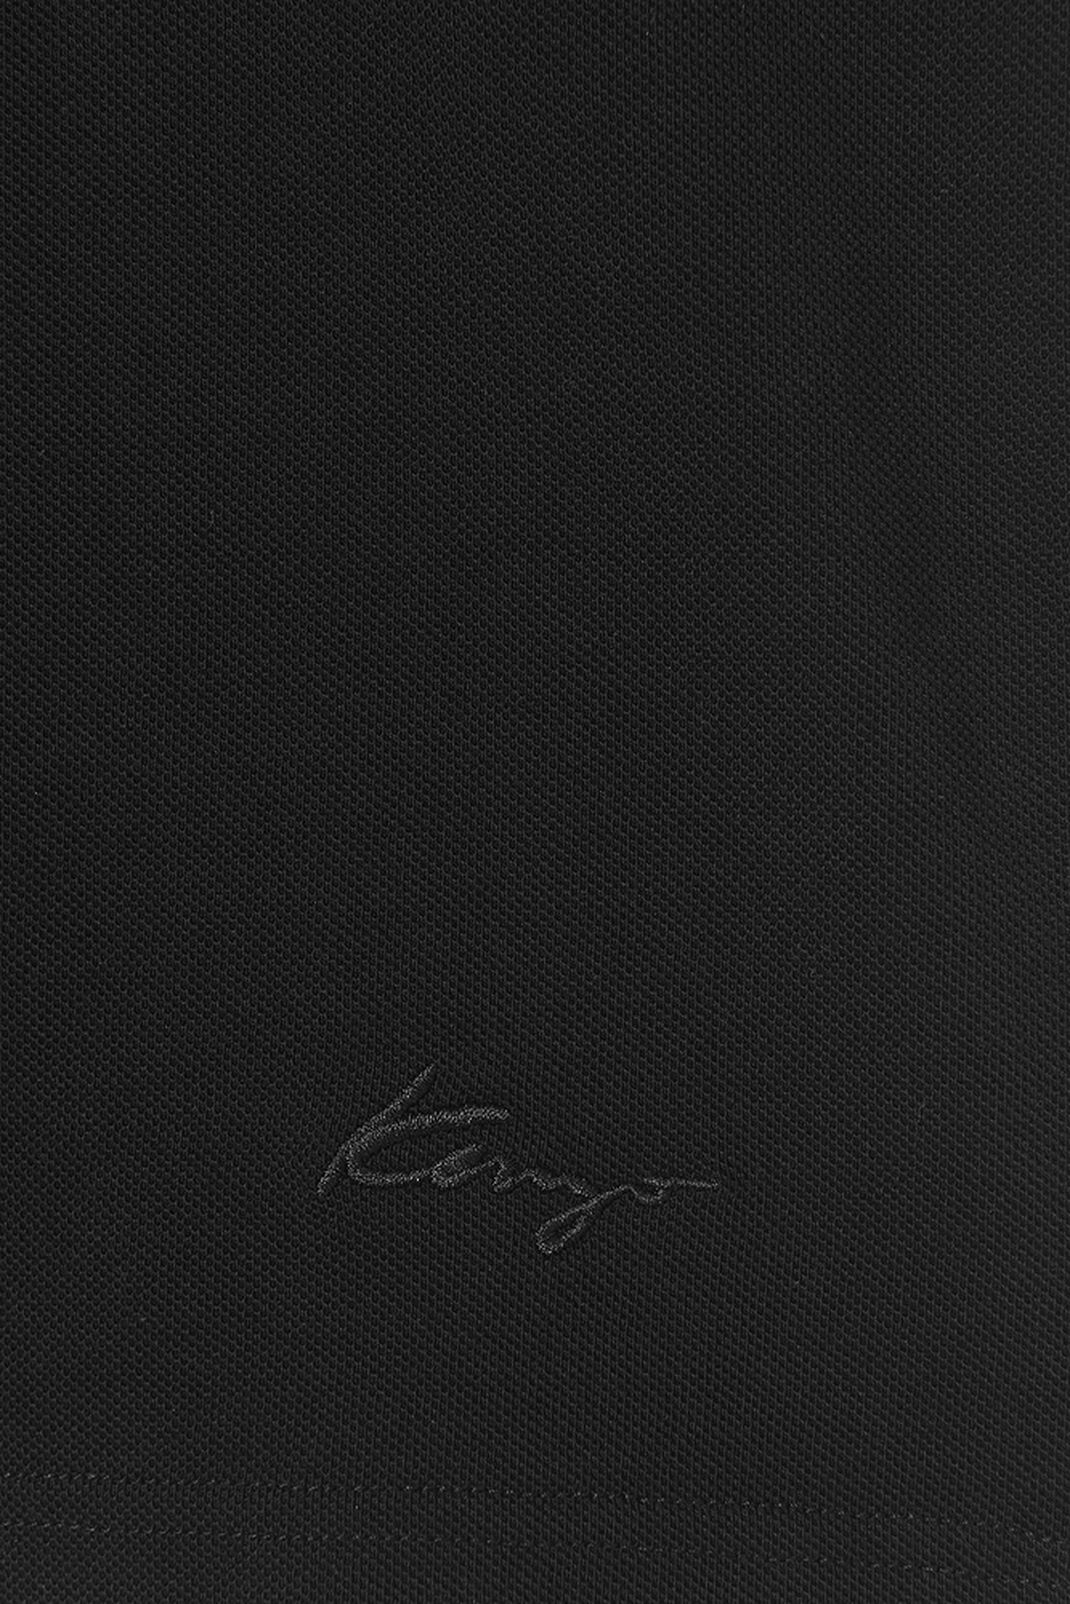 BLACK Polo KENZO Signature for men